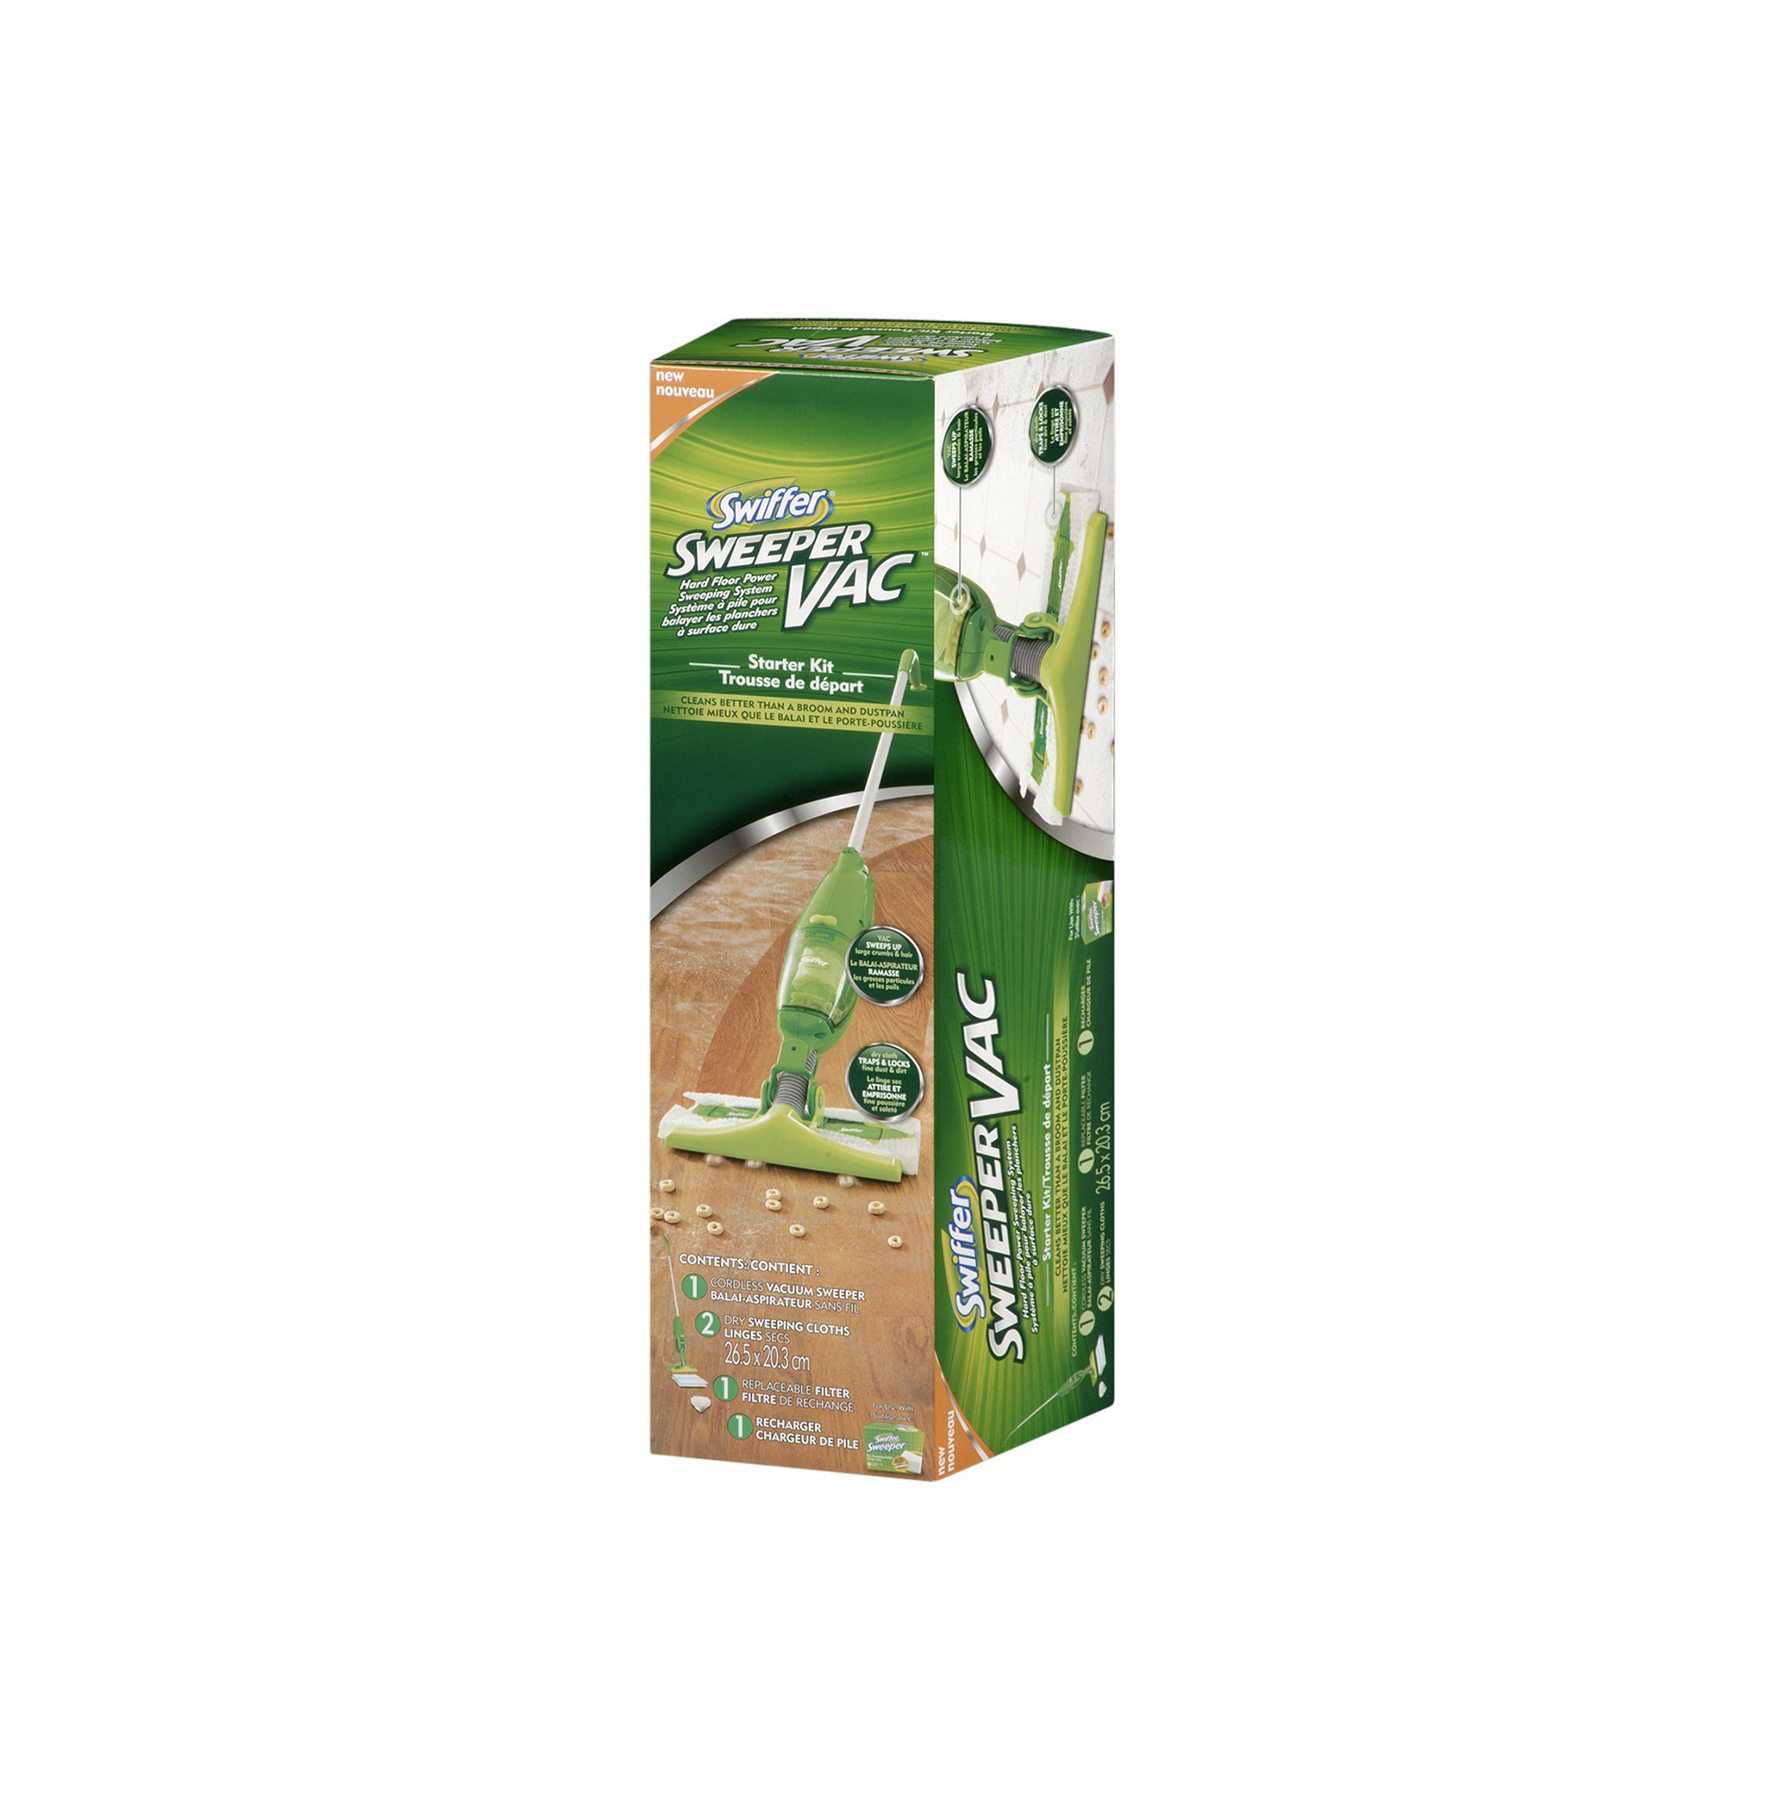 Swiffer Sweepervac Rechargeable Cordless Vacuum